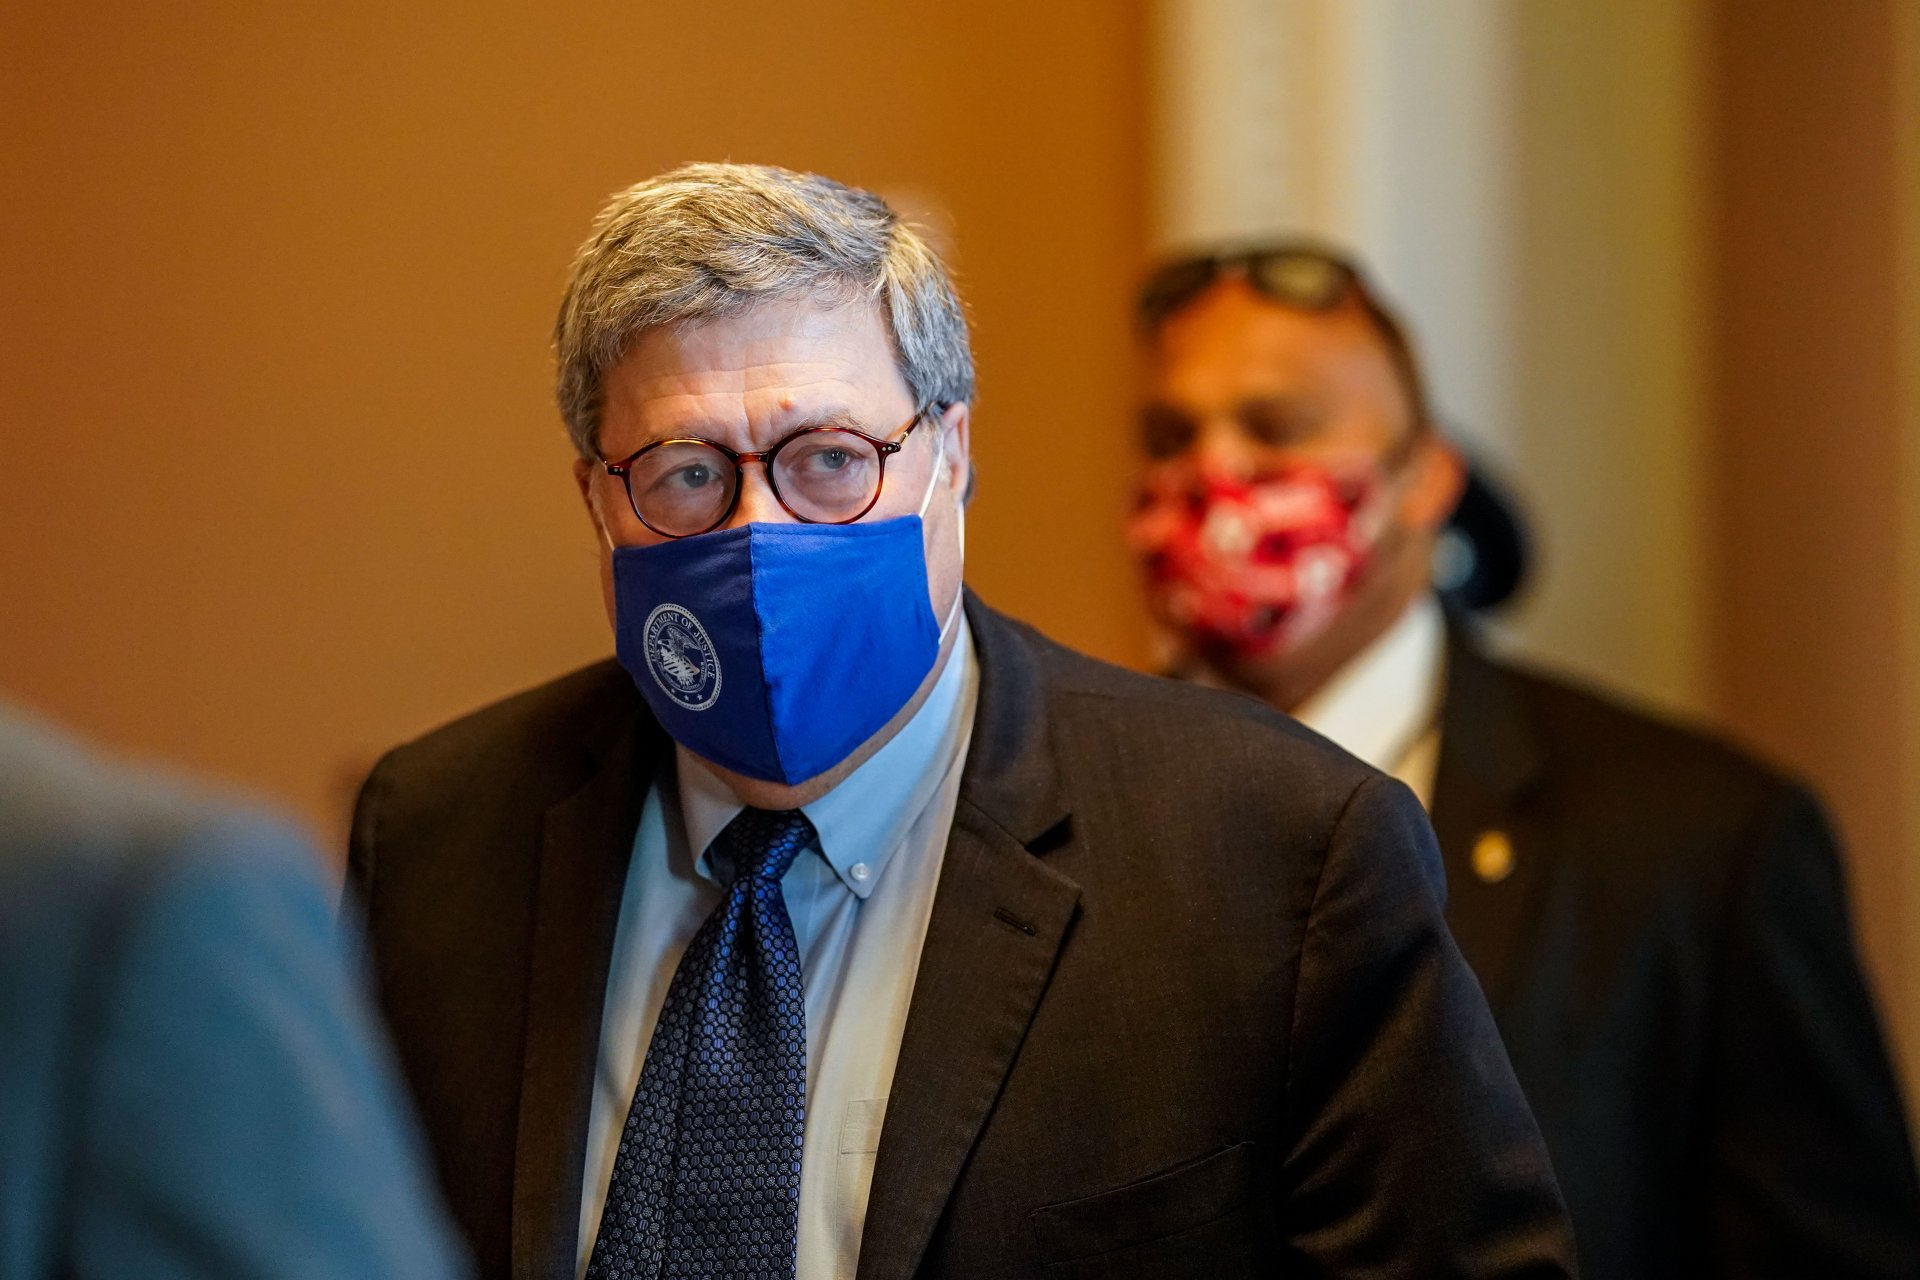 Mandatory Credit: Photo by Kent Nishimura/Los Angeles Times/Shutterstock (11010669a)US Attorney General William Barr walks out from the office of Senate Majority Leader Mitch McConnell (D-KY) at the US Capitol Building on Monday, Nov.